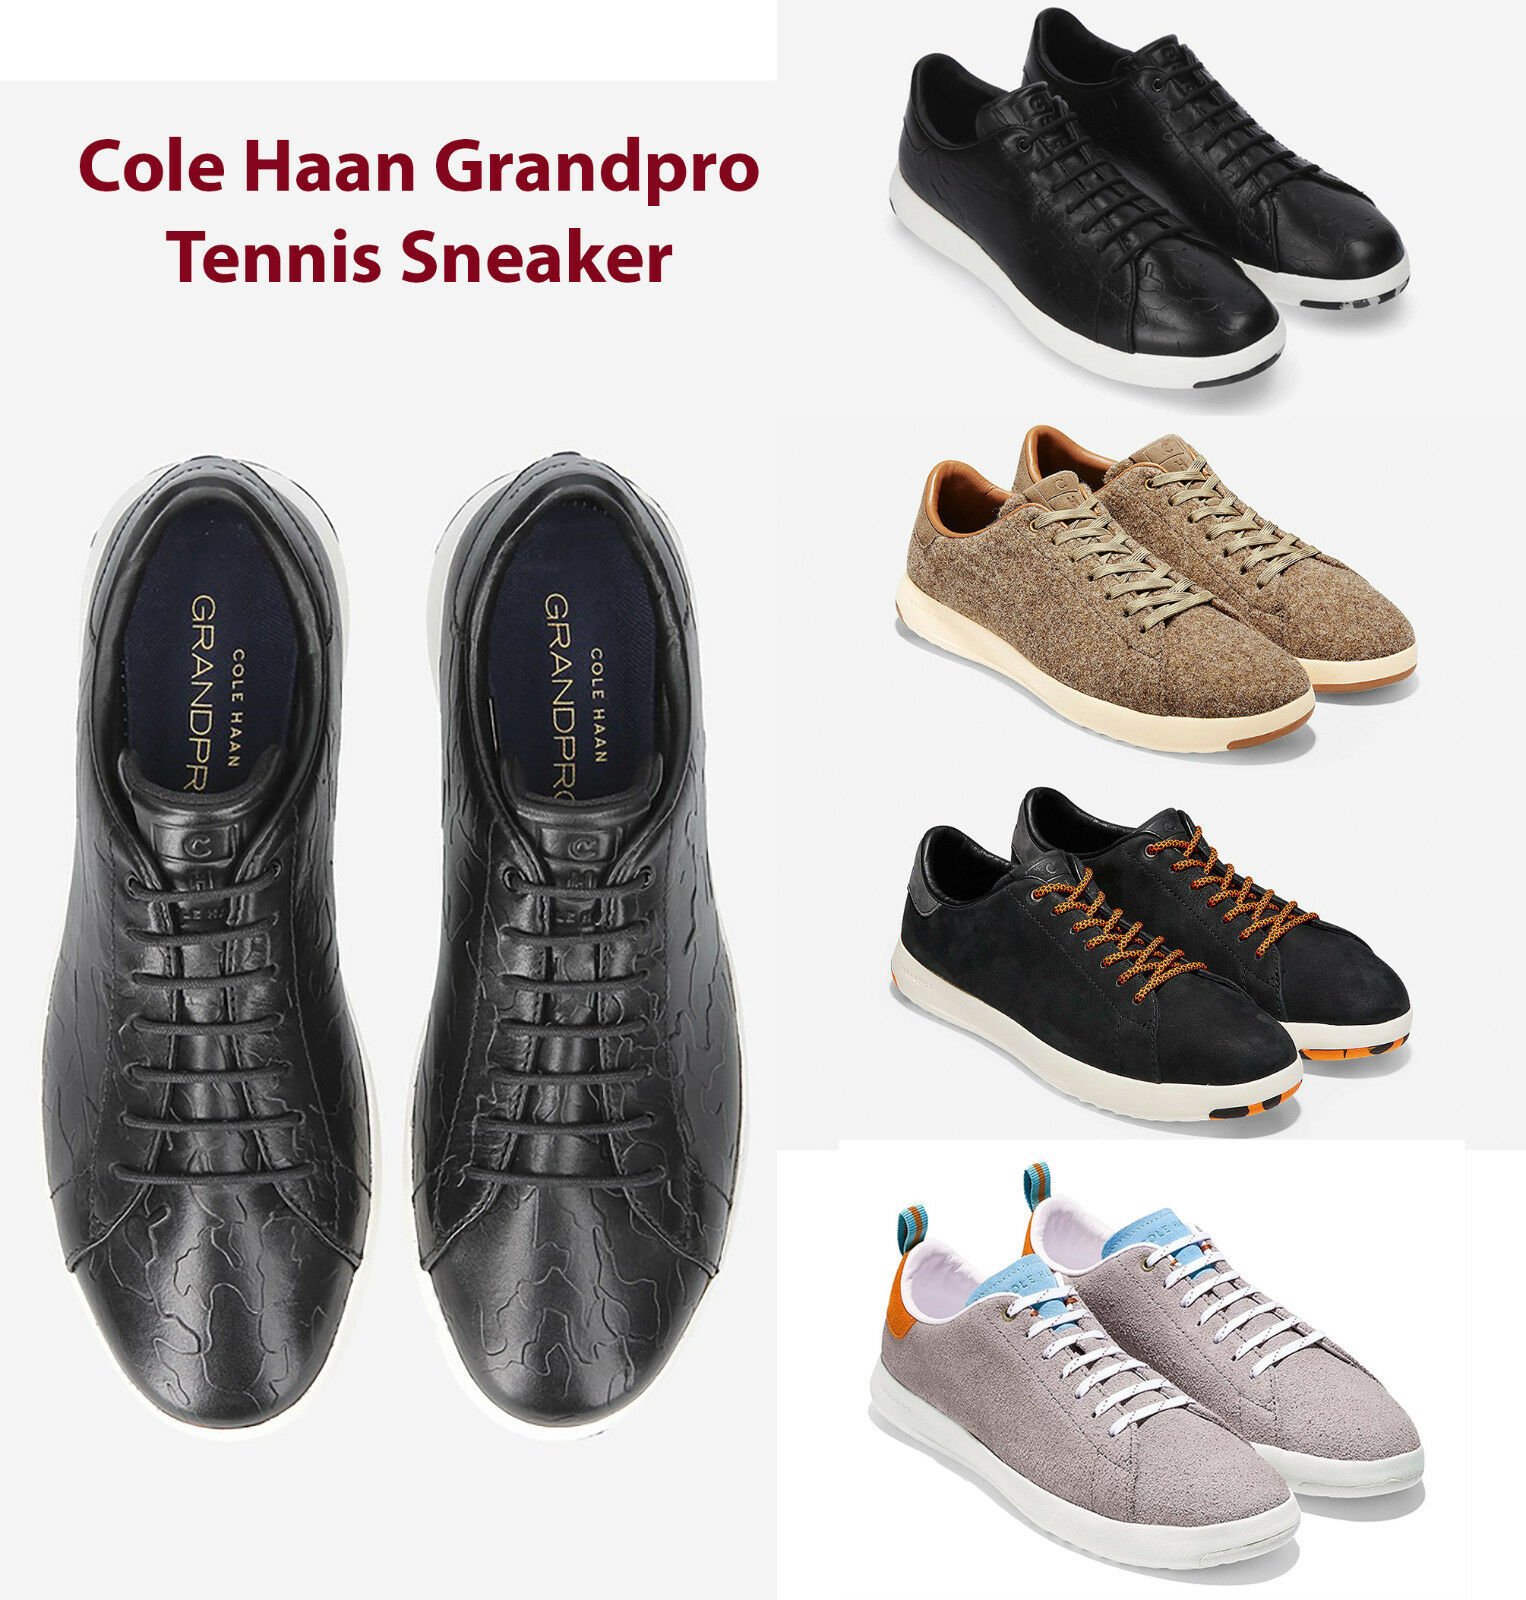 dd4f13aa0a678f Cole Haan Tennis shoes Leather Sneakers Authentic NEW Mens GrandPro ...